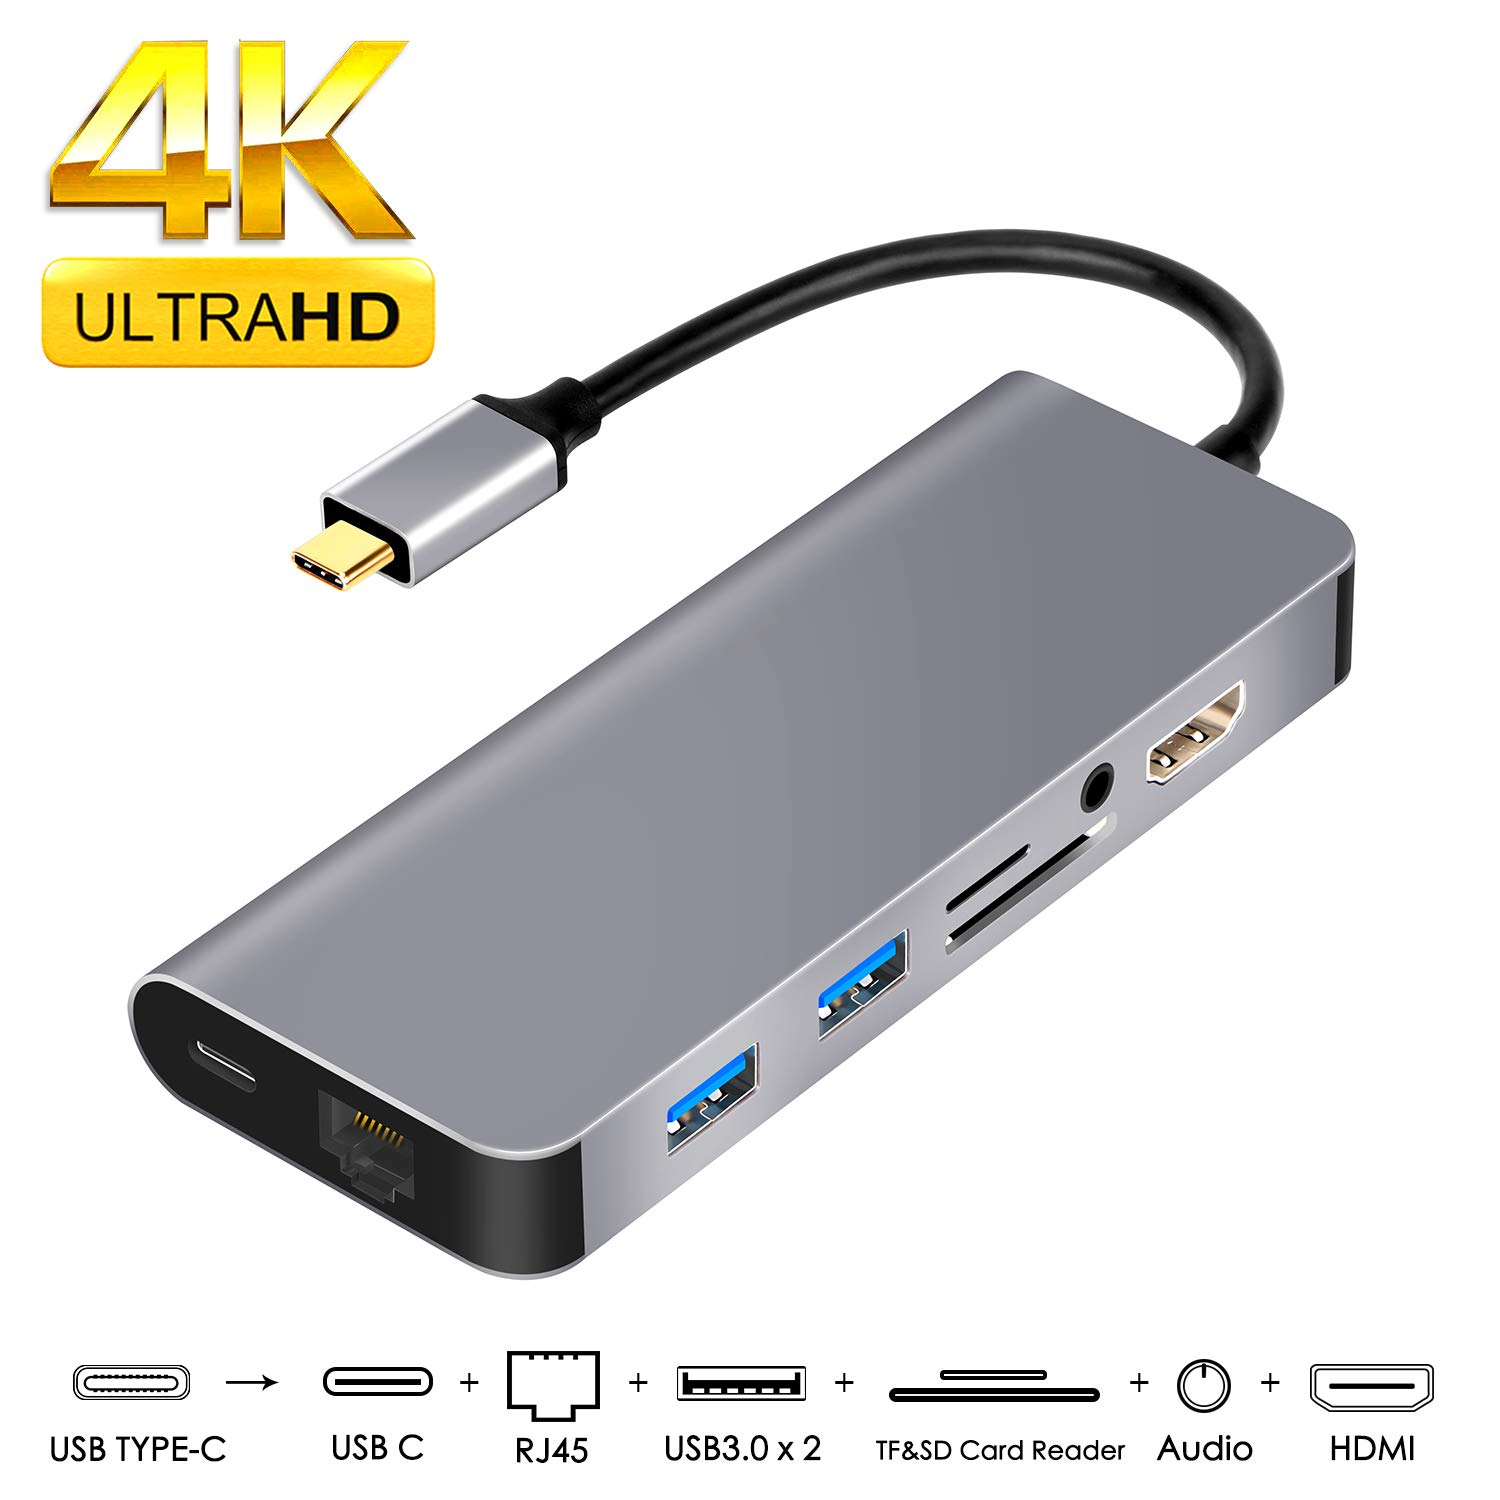 USB C Adapter HDMI Ethernet,8 in 1 Type C Adapter HDMI 4K,100W USB C Power Delivery,3.5mm Audio,2USB3.0,SD/TF Card Reader,Support Samsung DeX for Galaxy S9/S8/Note 9/8,Nintendo Switch,MacBook Pro 2017 2018